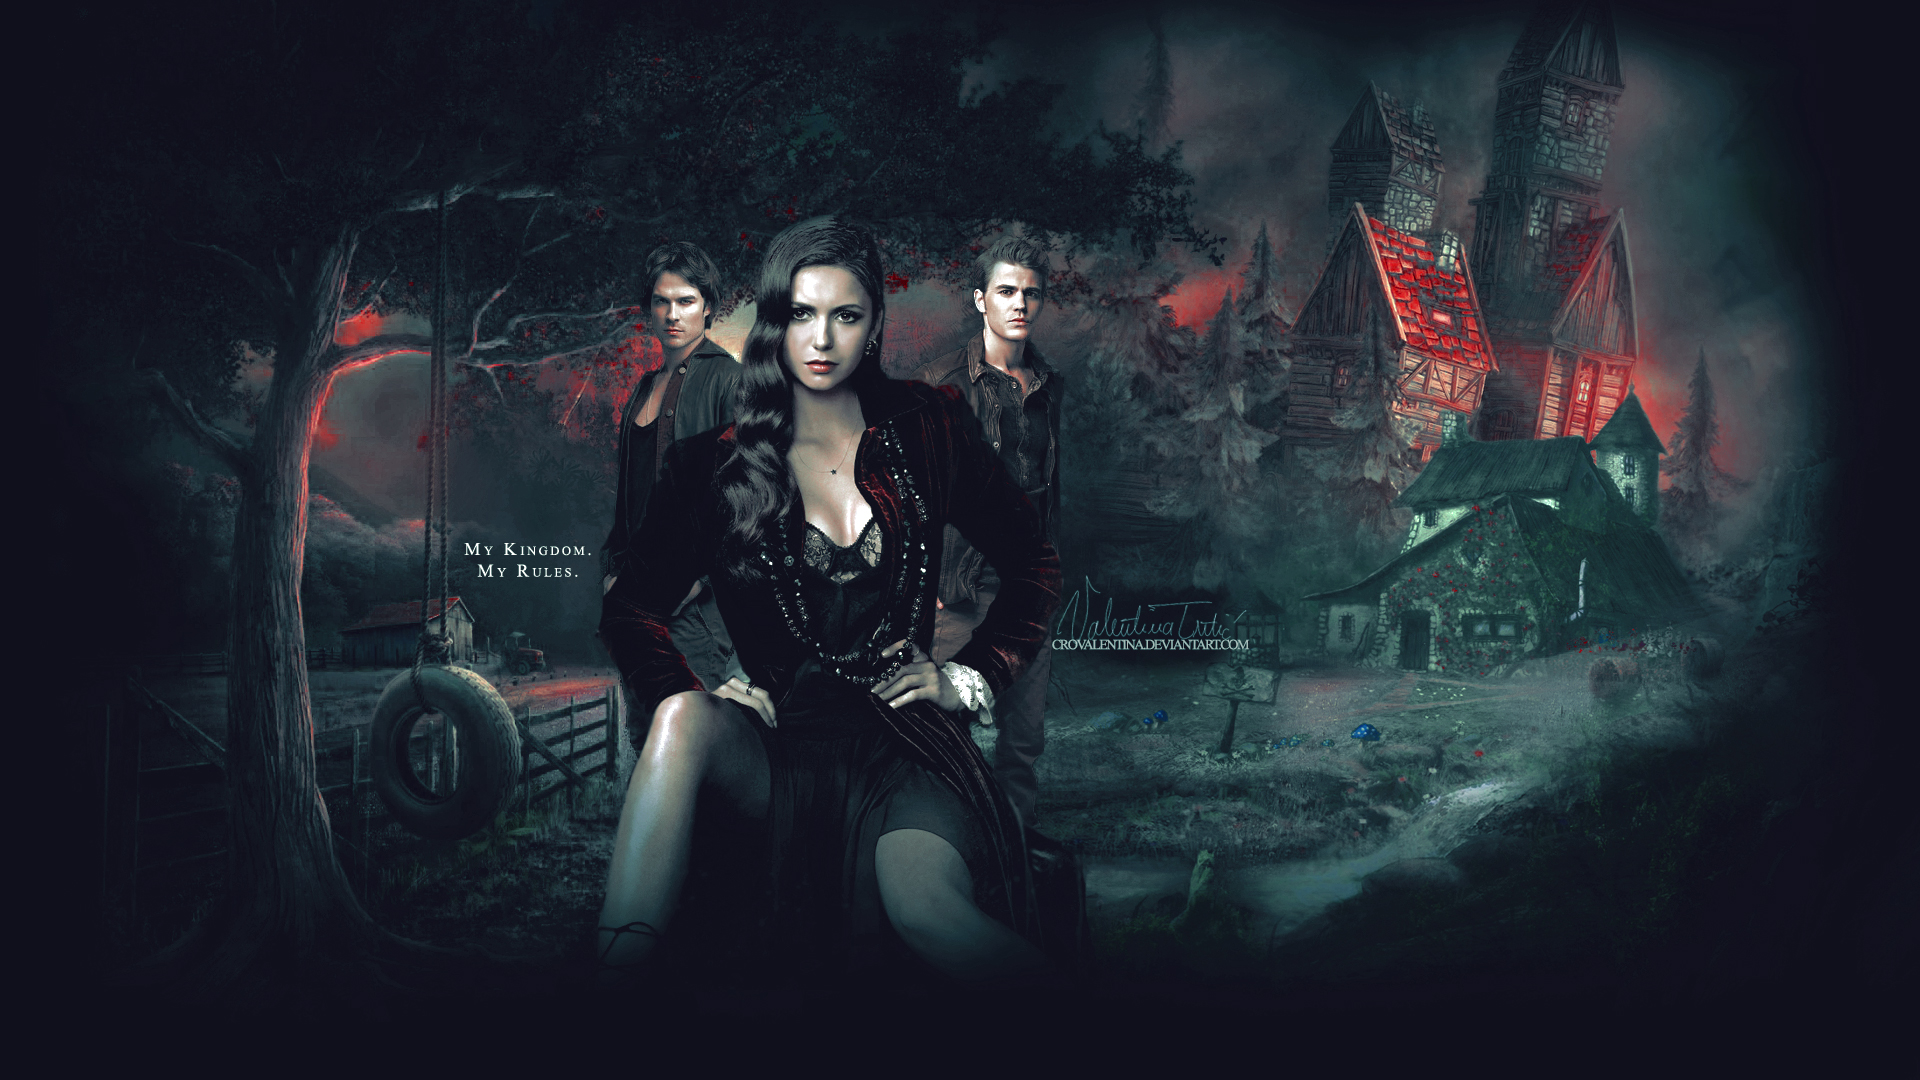 Pamietniki wampirow, The Vampire Diaries 069 Ian Somerhalder, Nina Dobrev, Paul Wesley